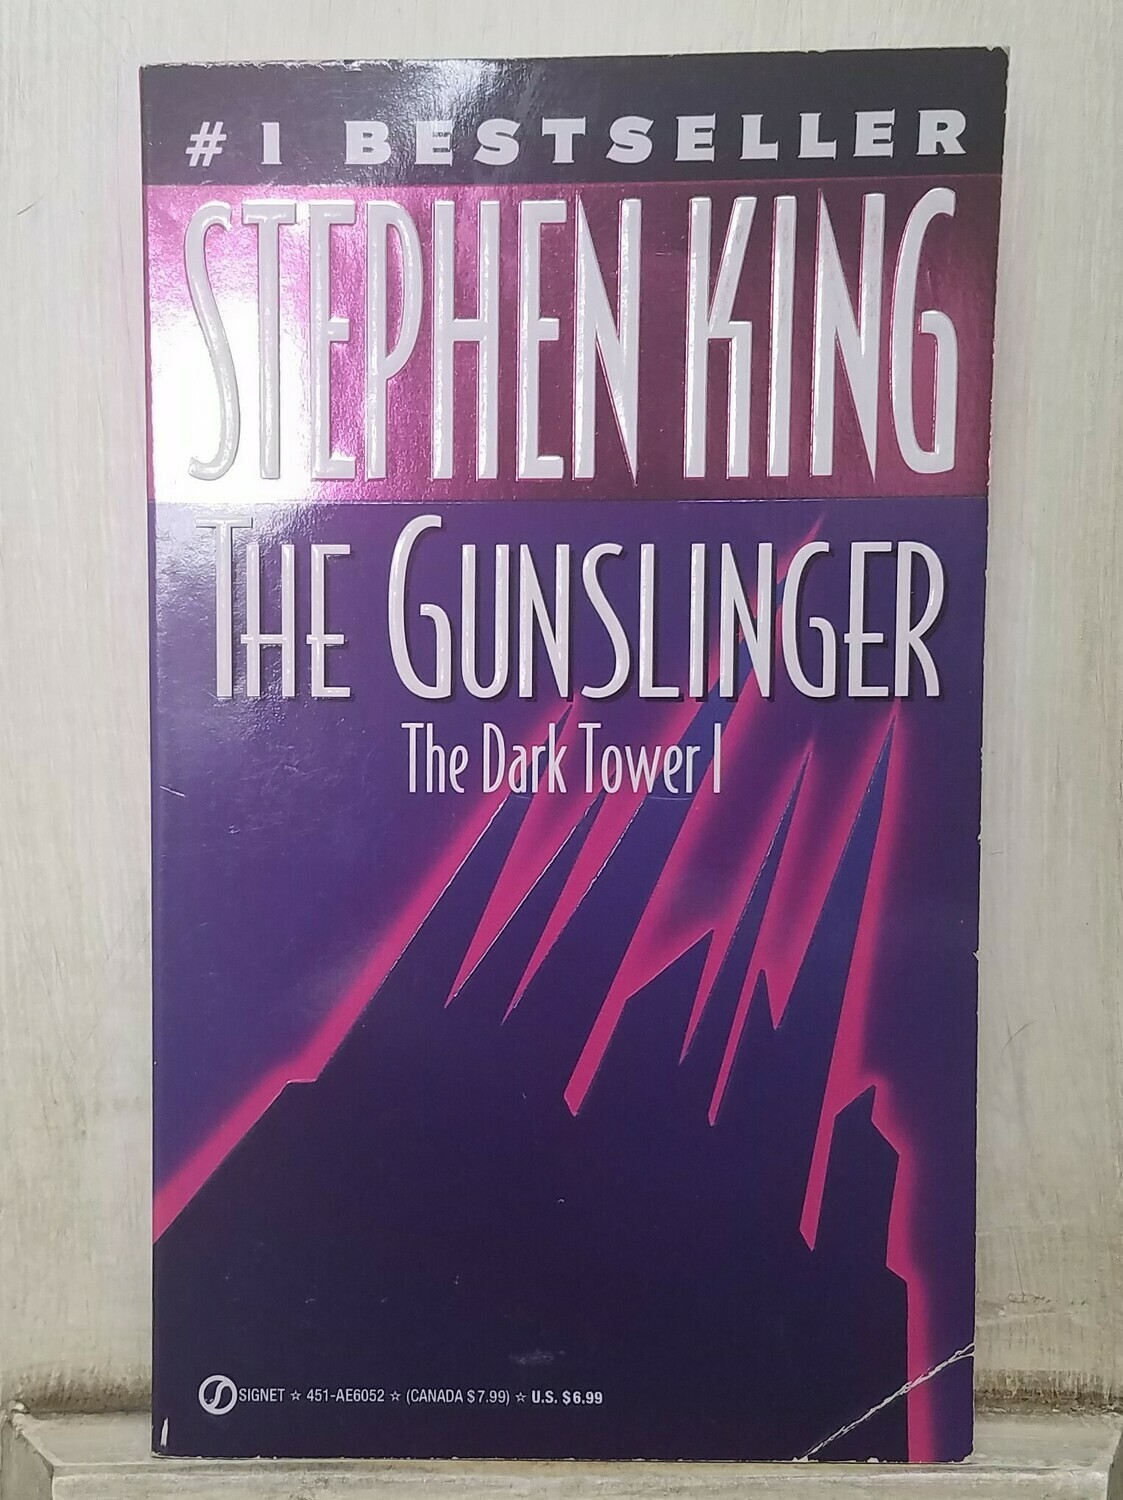 The Dark Tower 1: The Gunslinger by Stephen King